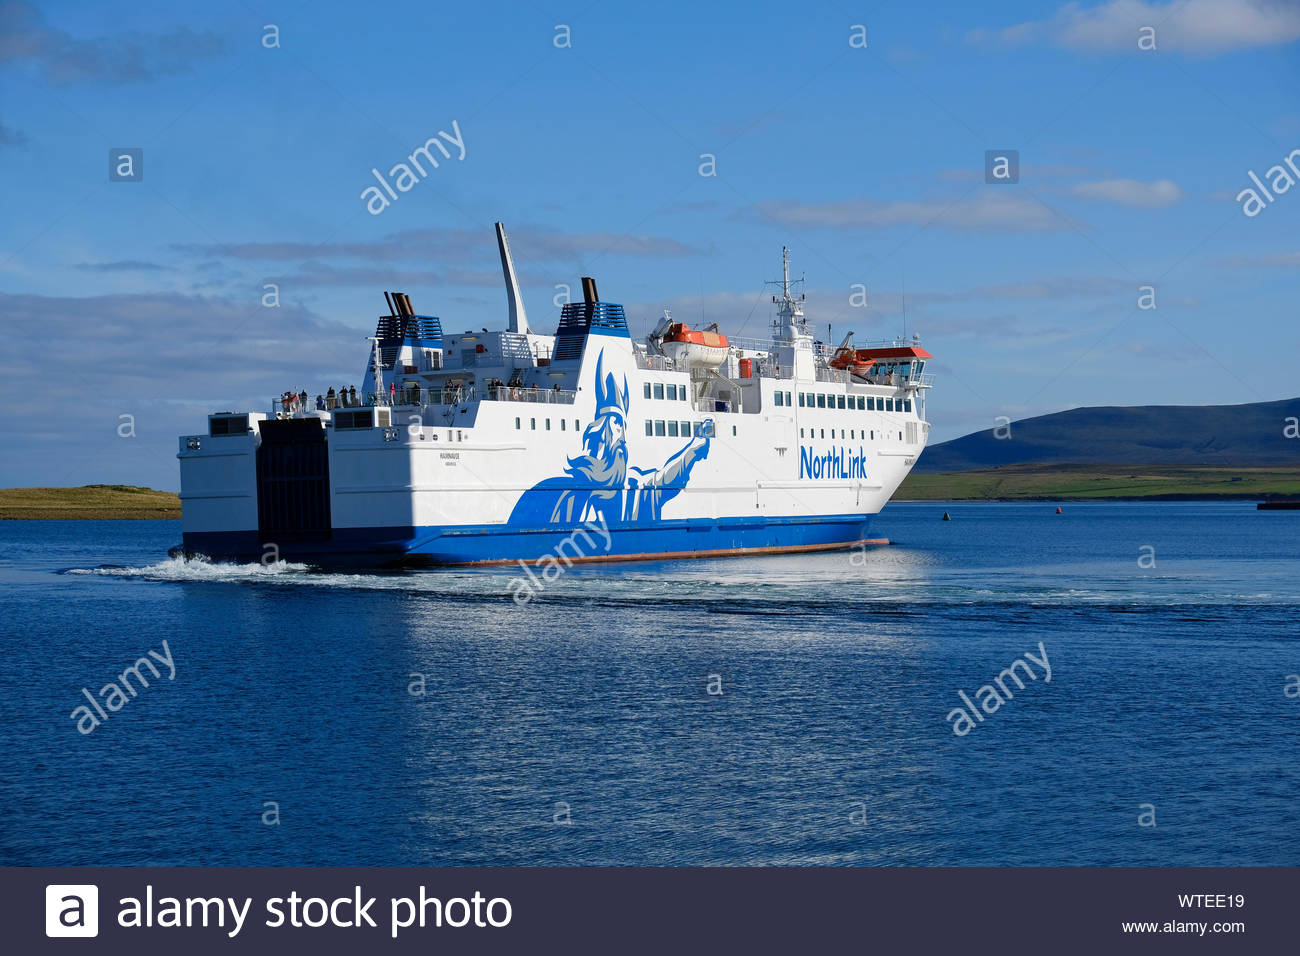 Northlink Car And Passenger Ferry Mv Hamnavoe Departing Stromness Harbour Orkney For Scrabster On Mainland Scotland Stock Photo 273225605 Alamy